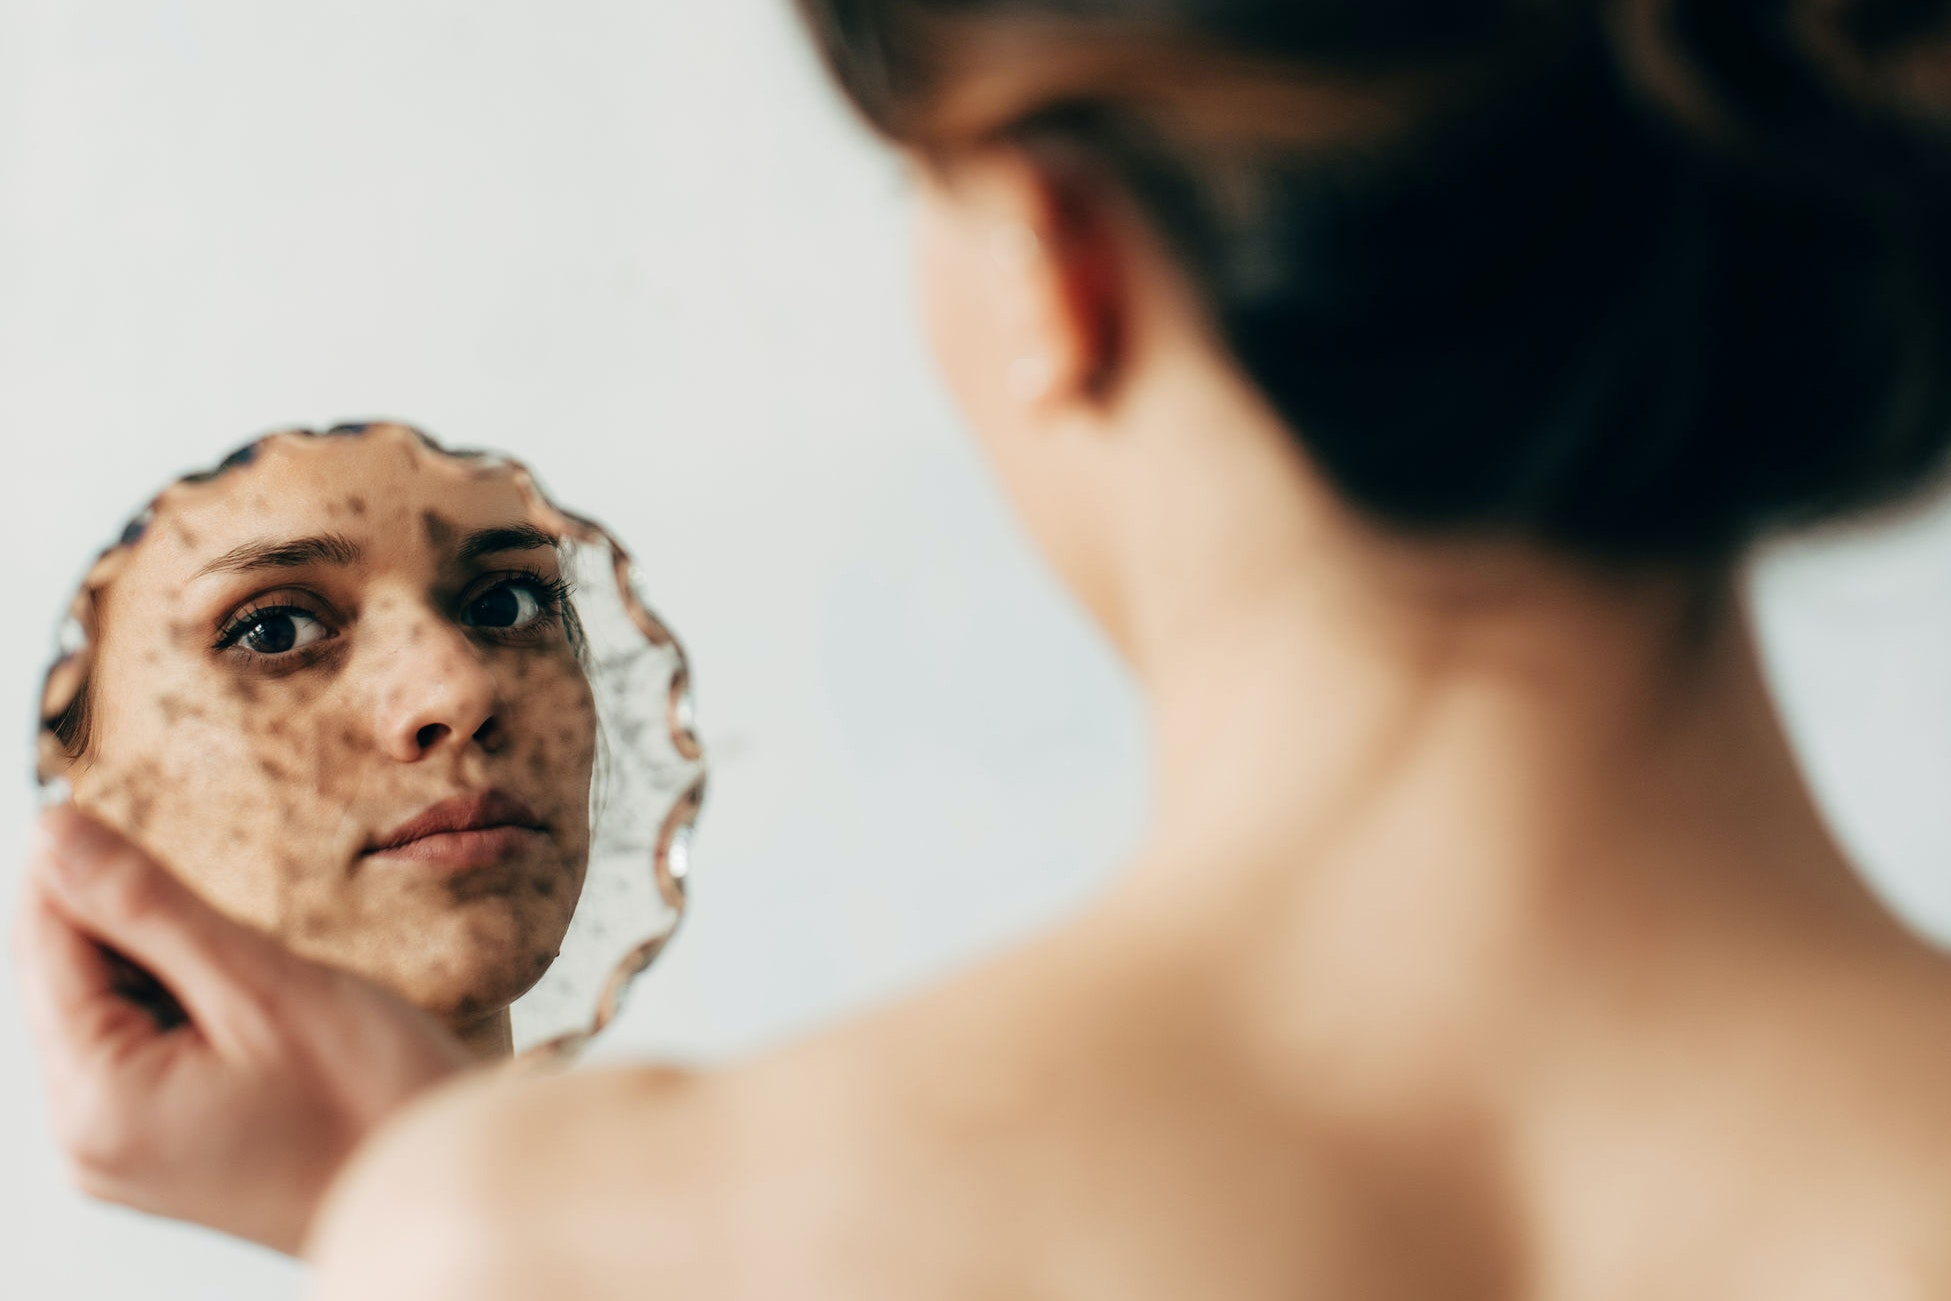 How to Safely Manage Your Cystic Acne at Home, According to a Dermatologist